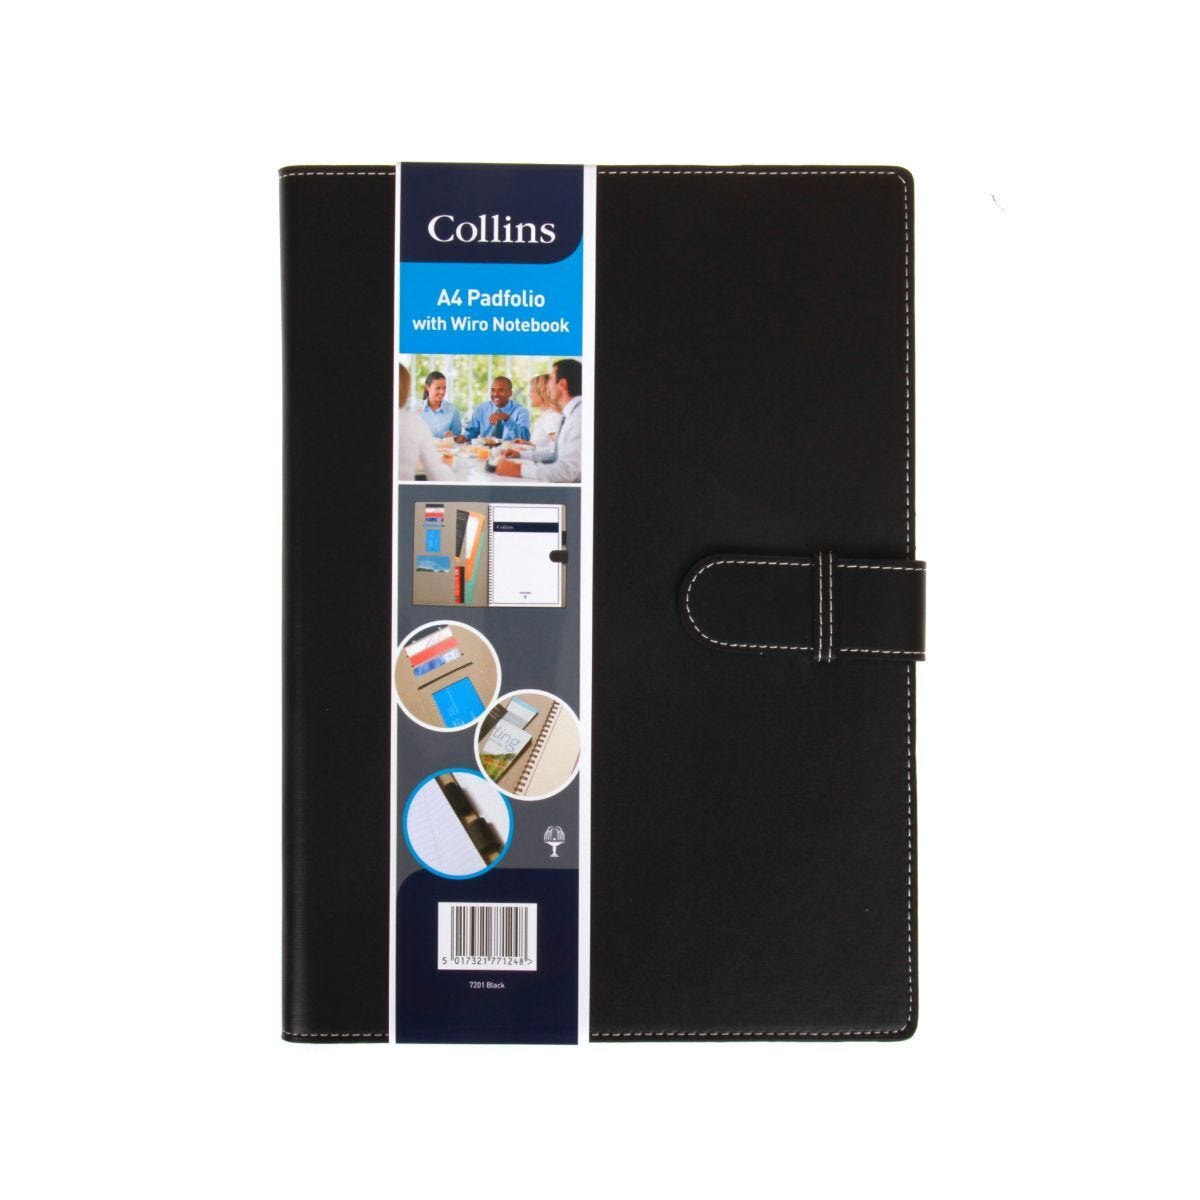 Collins Padfolio With Wiro Notebook A4 Black